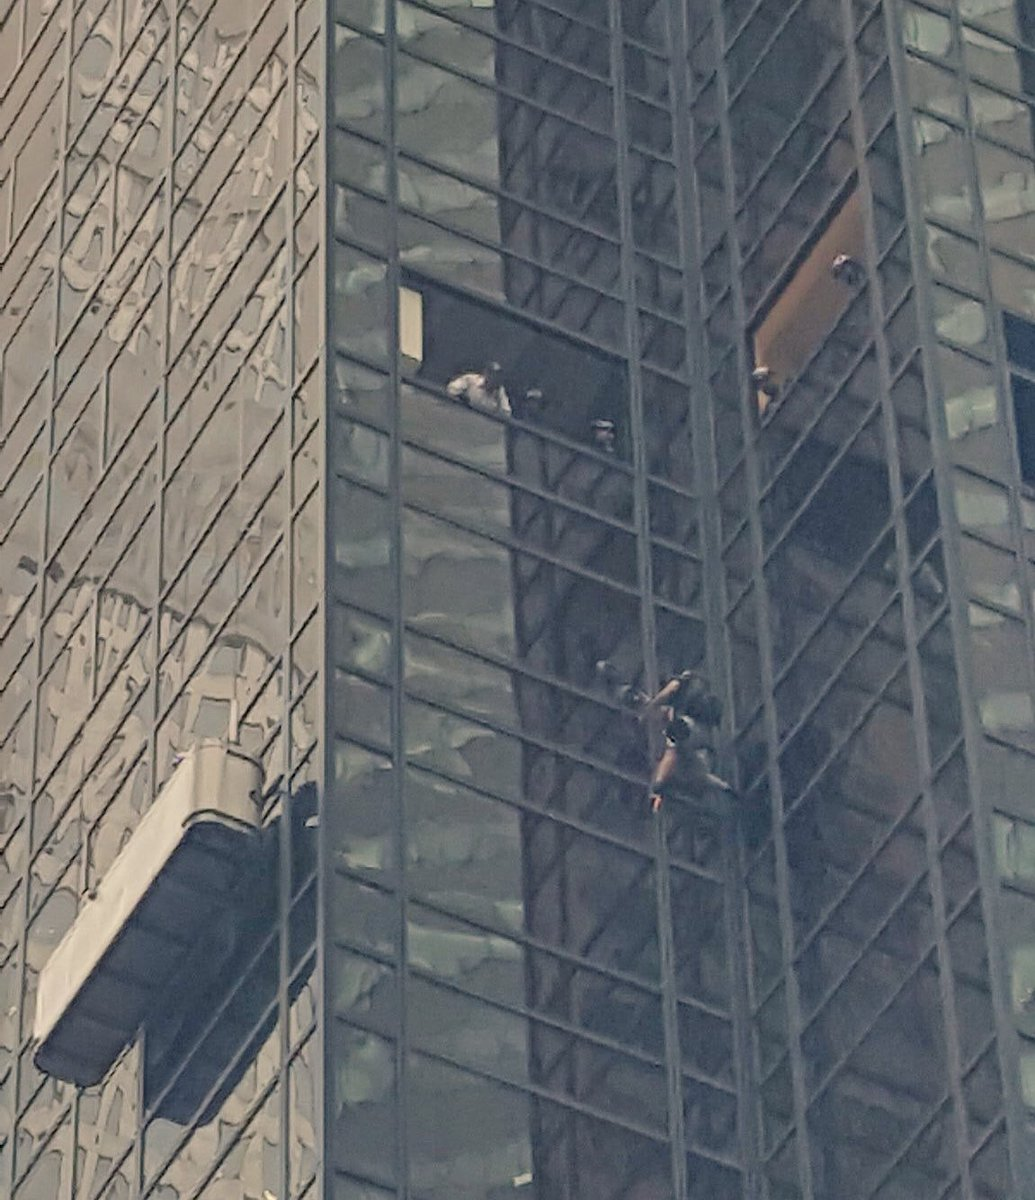 Trump Tower suction cup climber named